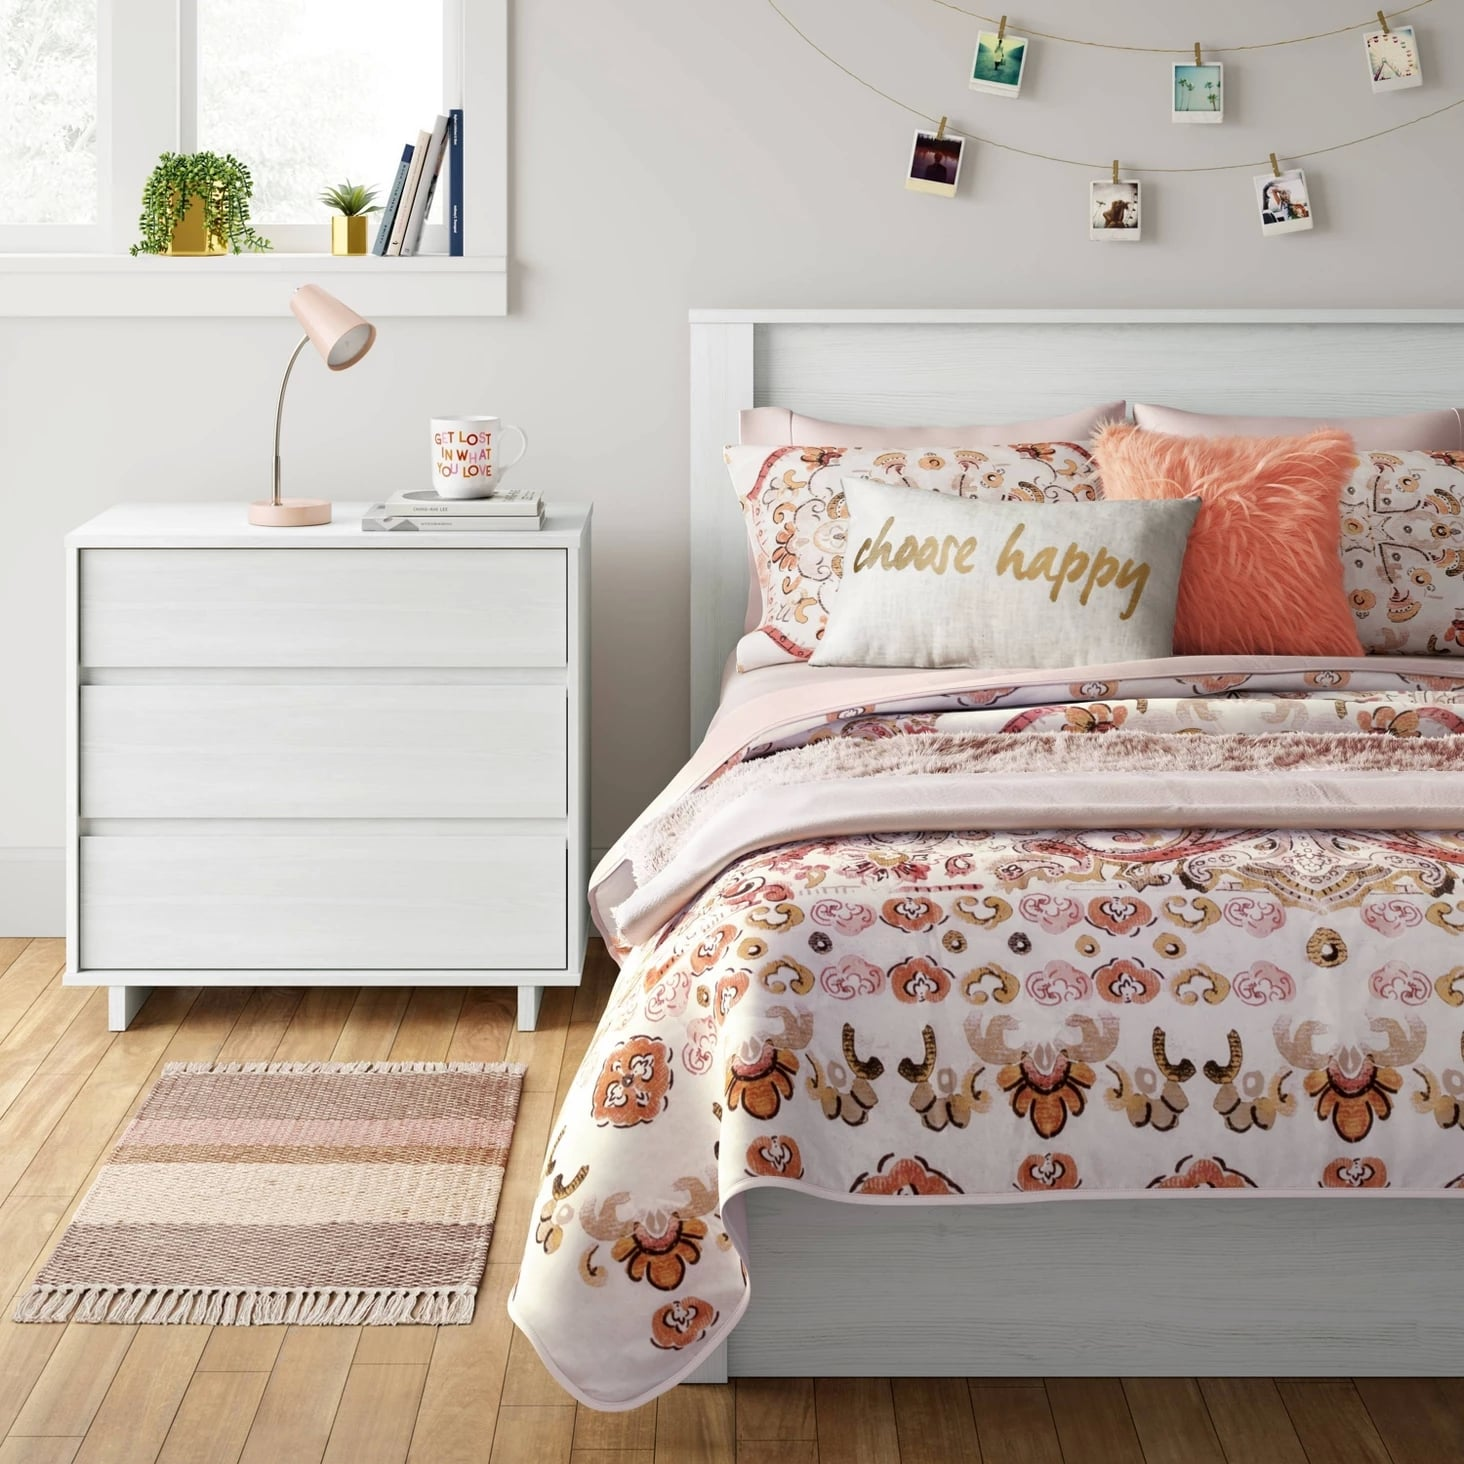 Modern Three Drawer Dresser Prepare Your College Checklist 50 Affordable Dorm Furniture Pieces To Buy From Target Asap Popsugar Home Photo 25